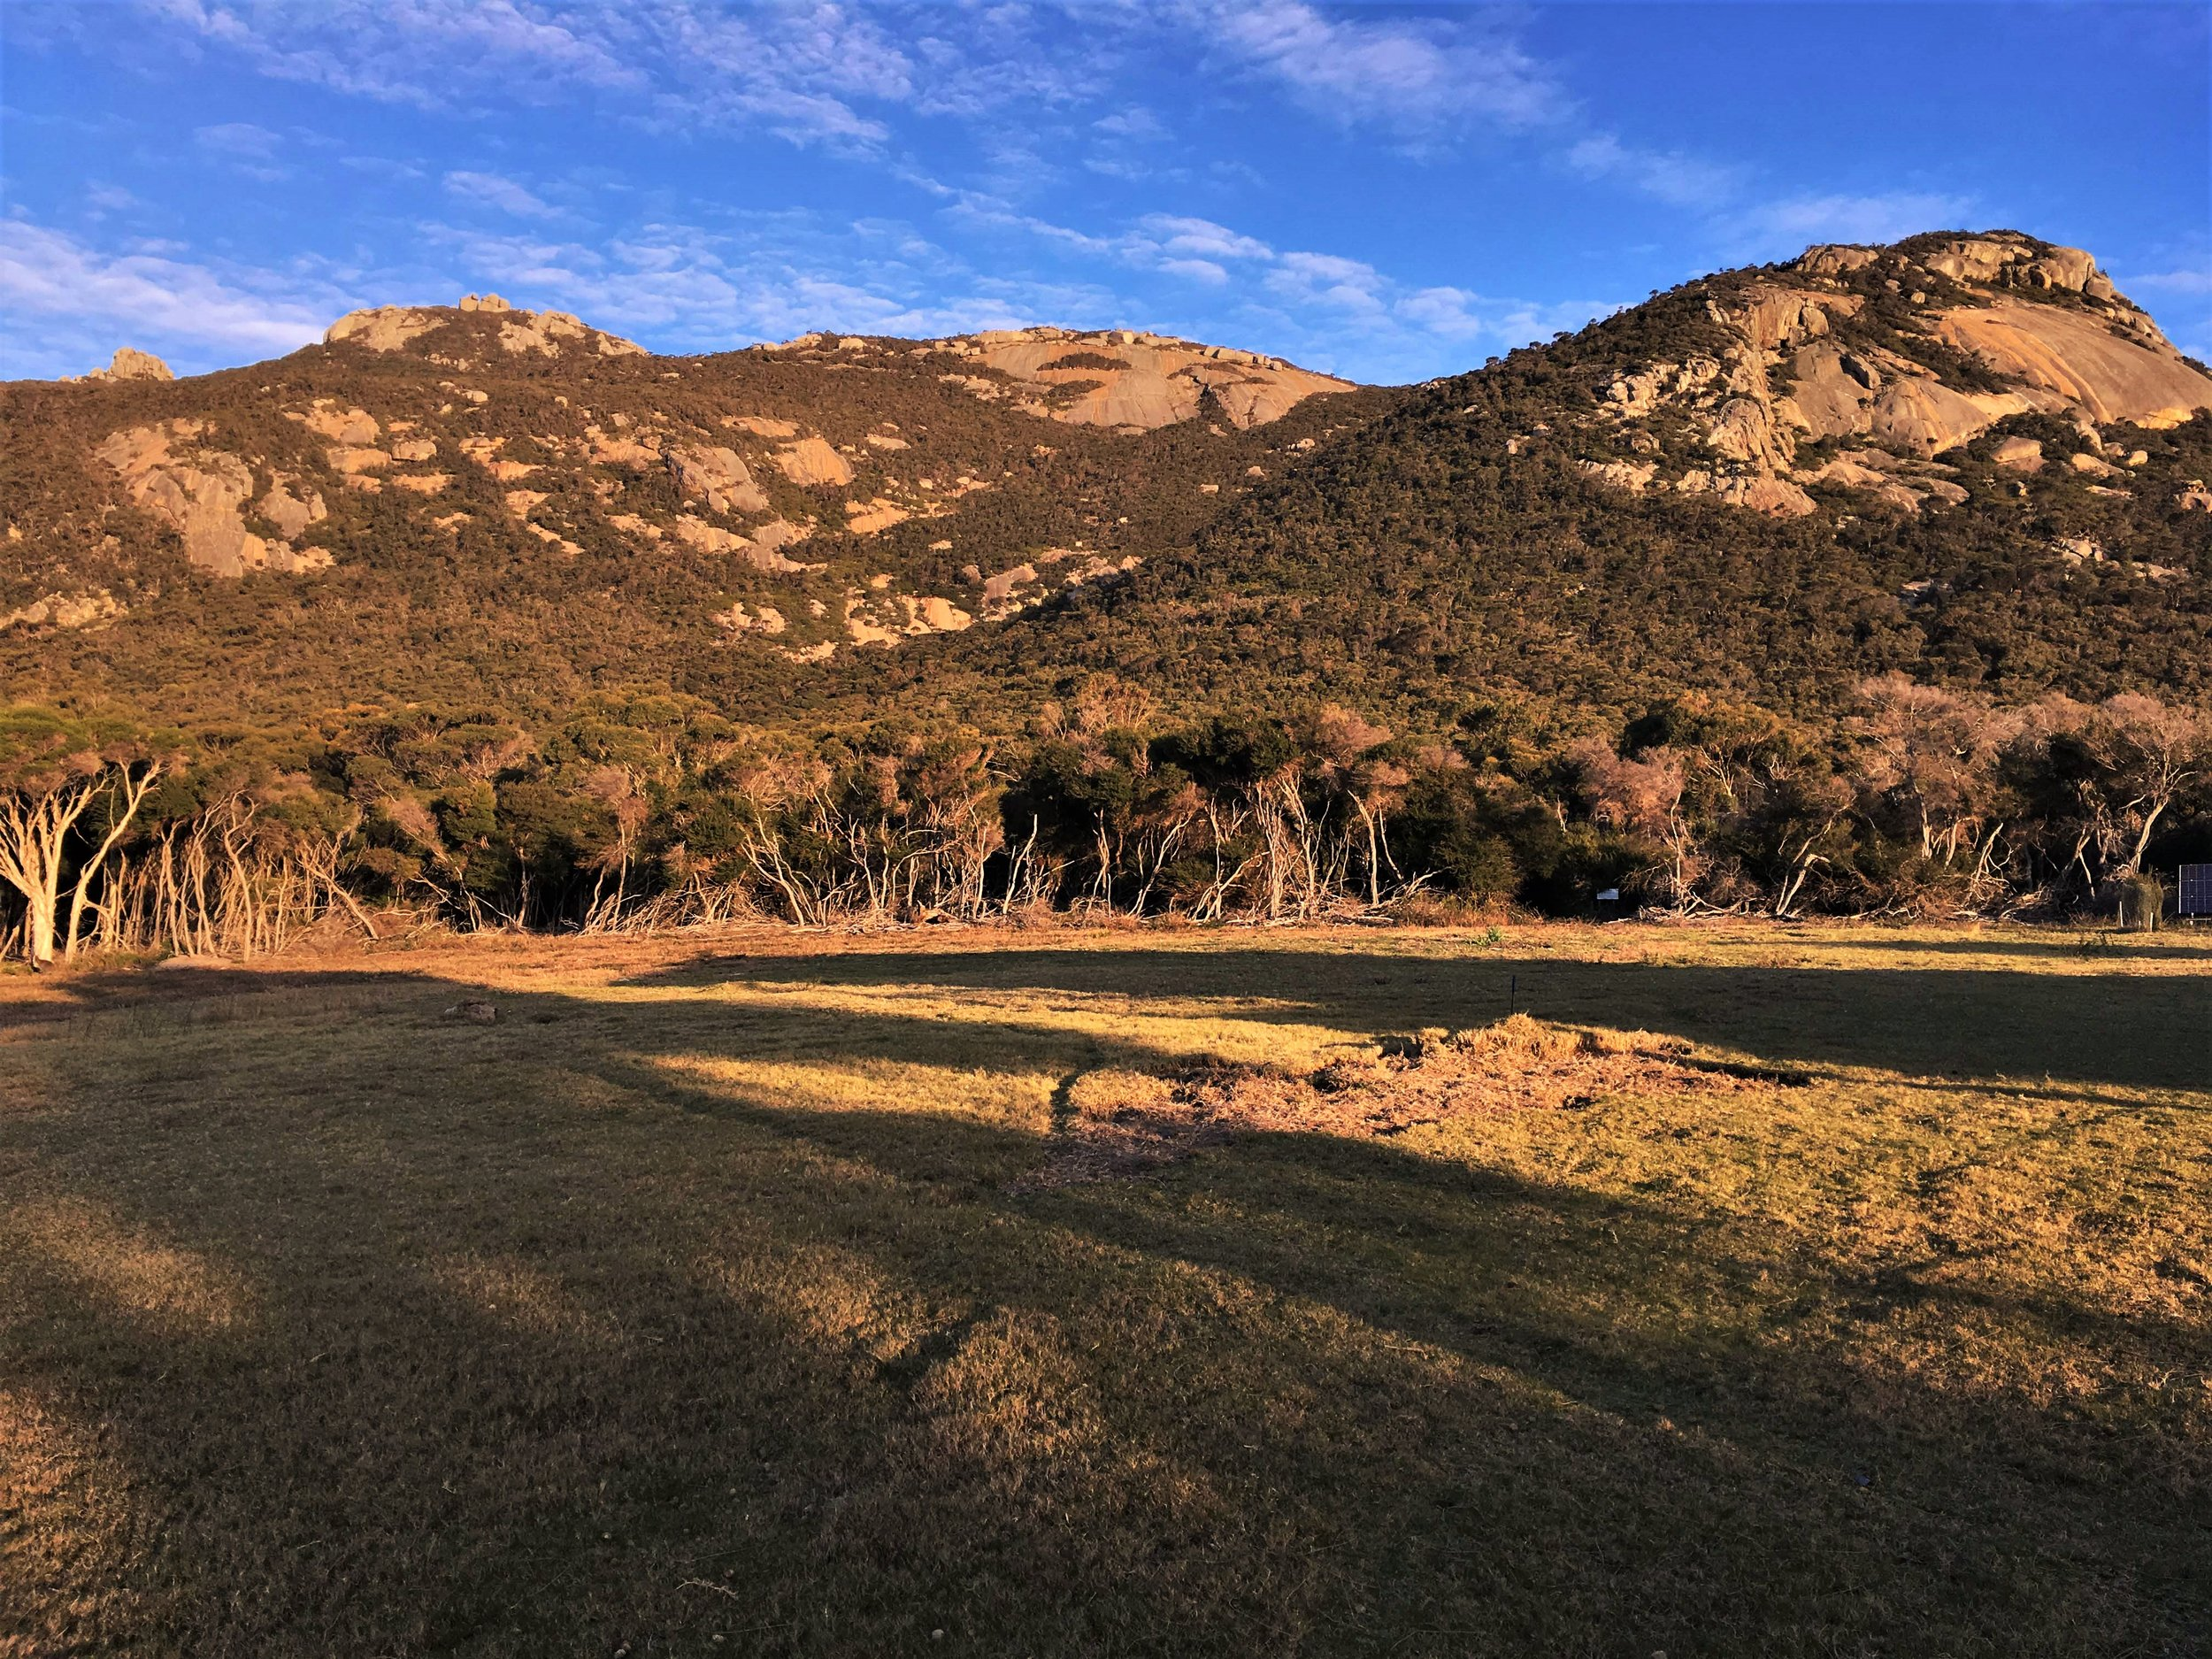 The National Park just before sunset, viewed across the lawn at Mountain Seas.